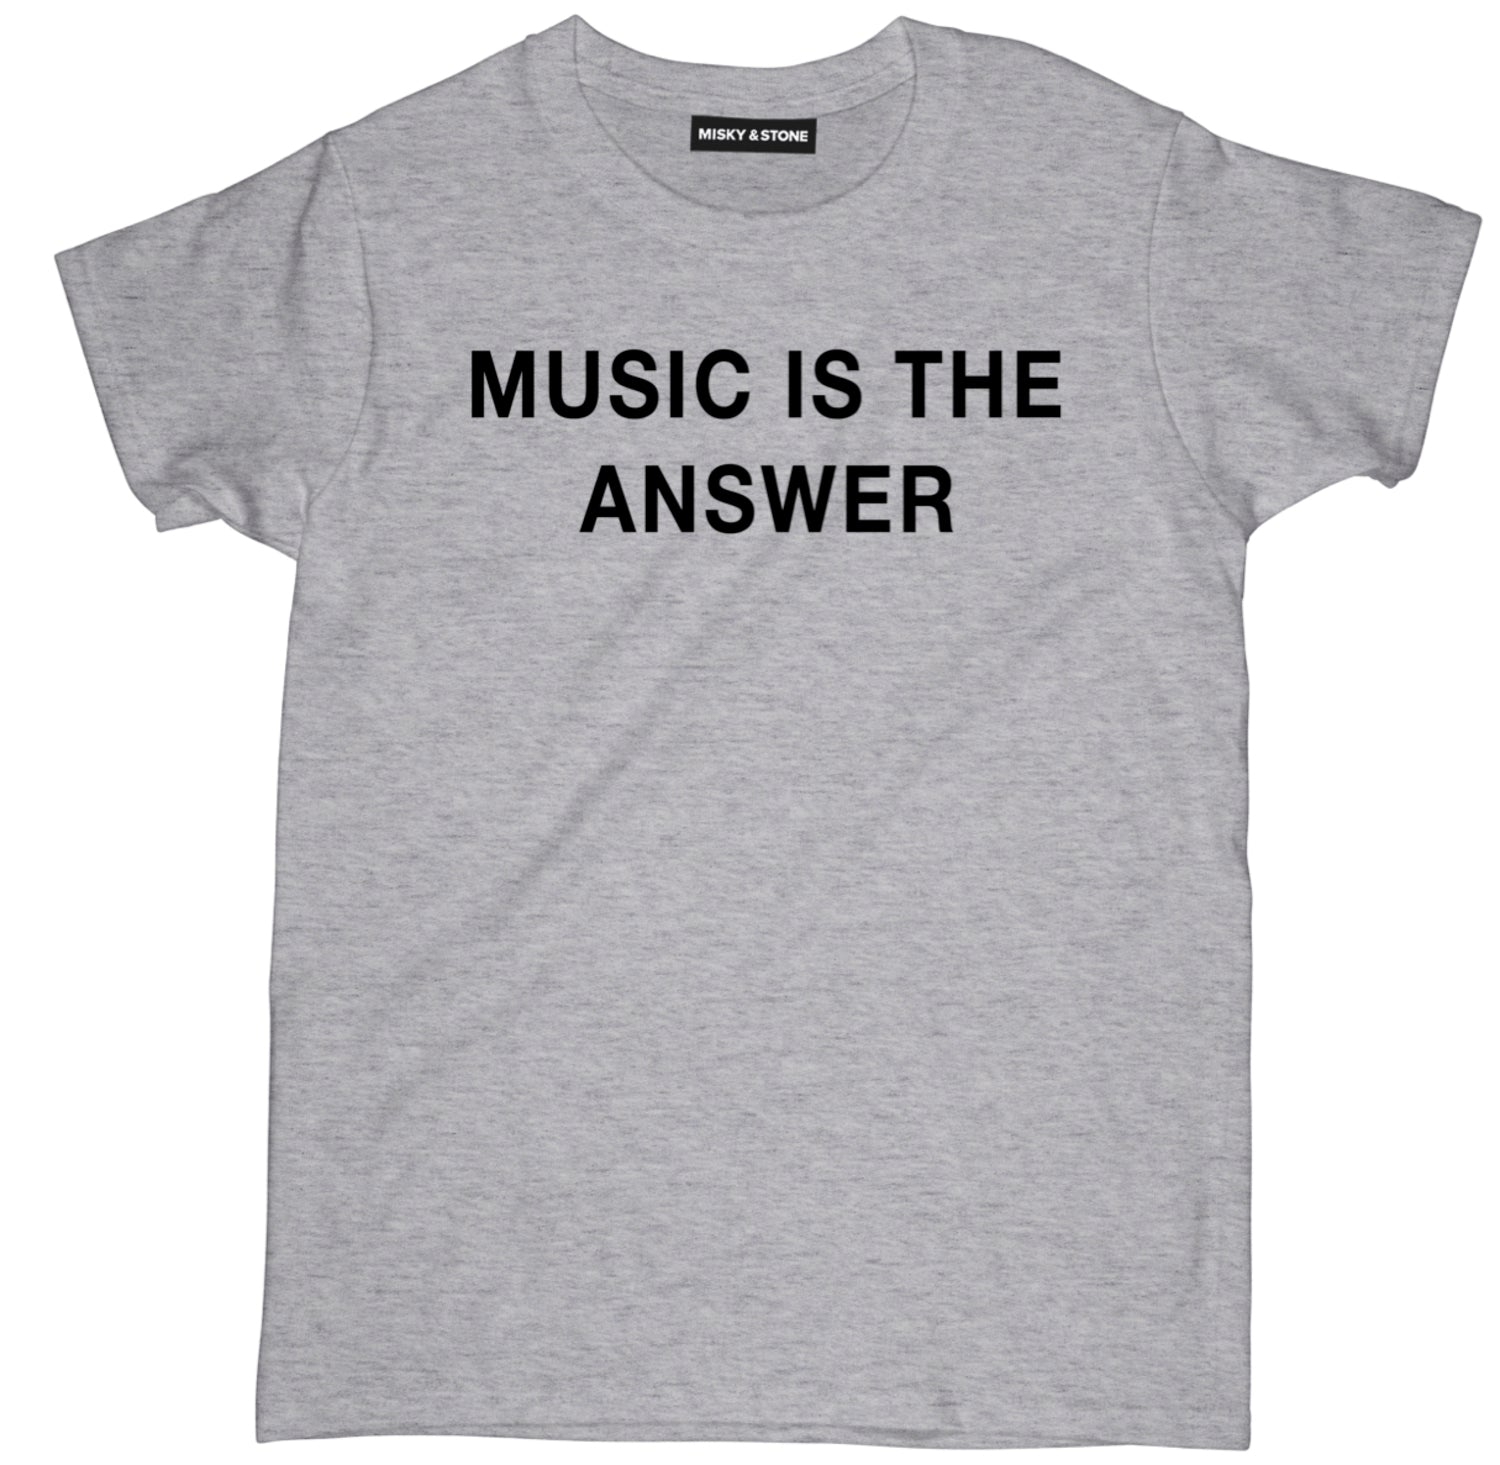 music is the answer t shirt, music is the answer shirt, spiritual t shirts, spiritual shirts, spiritual quote t shirts